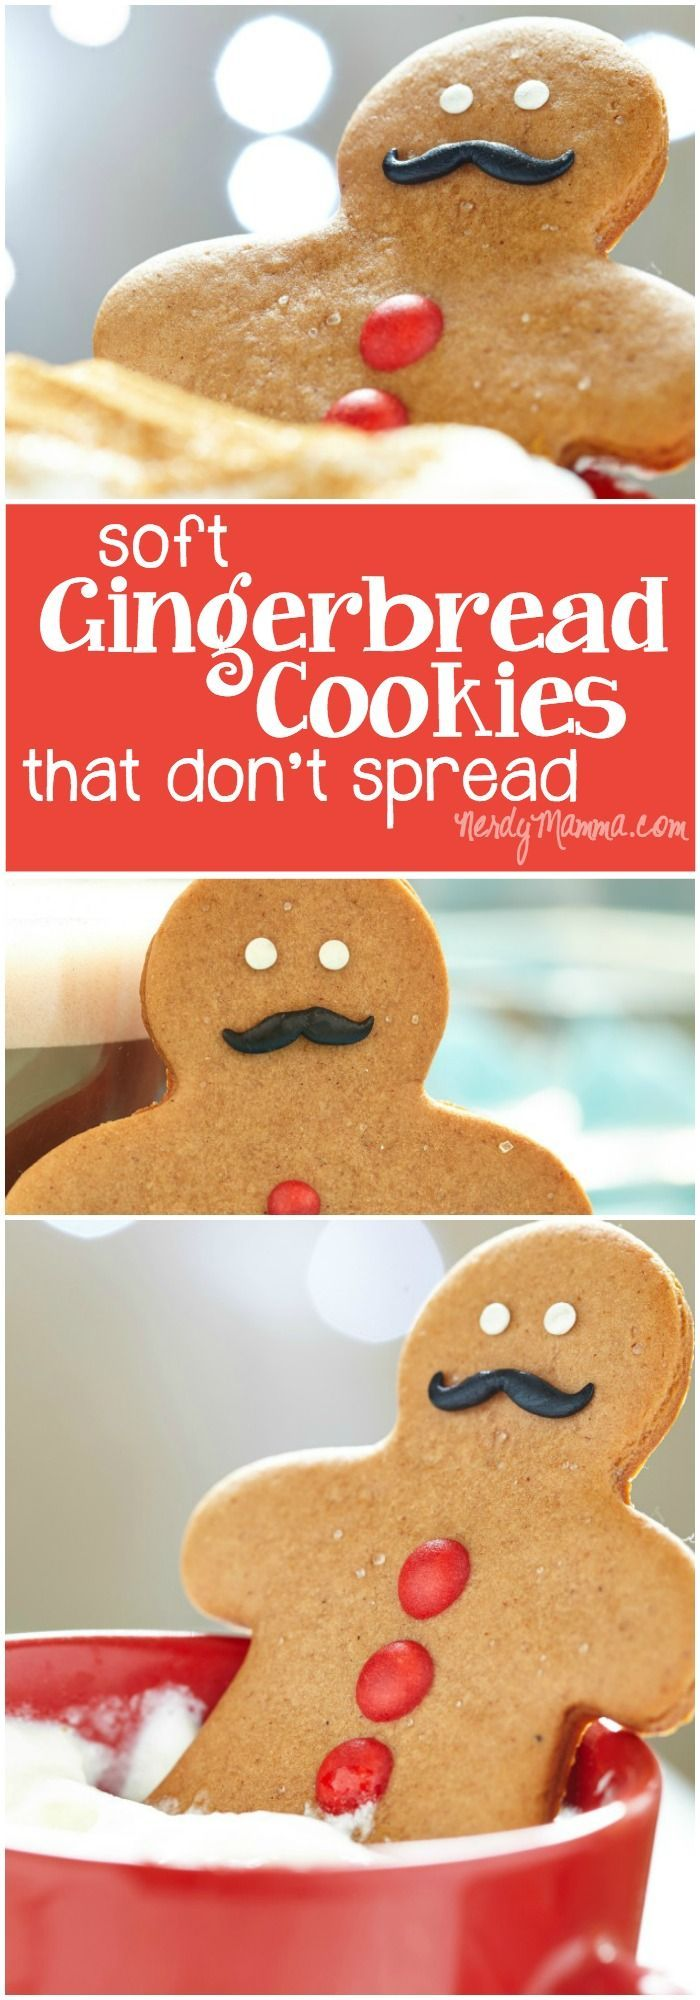 These gingerbread cookies are perfect for making gingerbread men! So soft, too. It's really hard to find a soft recipe for gingerbread cookies that don't spread...love it.